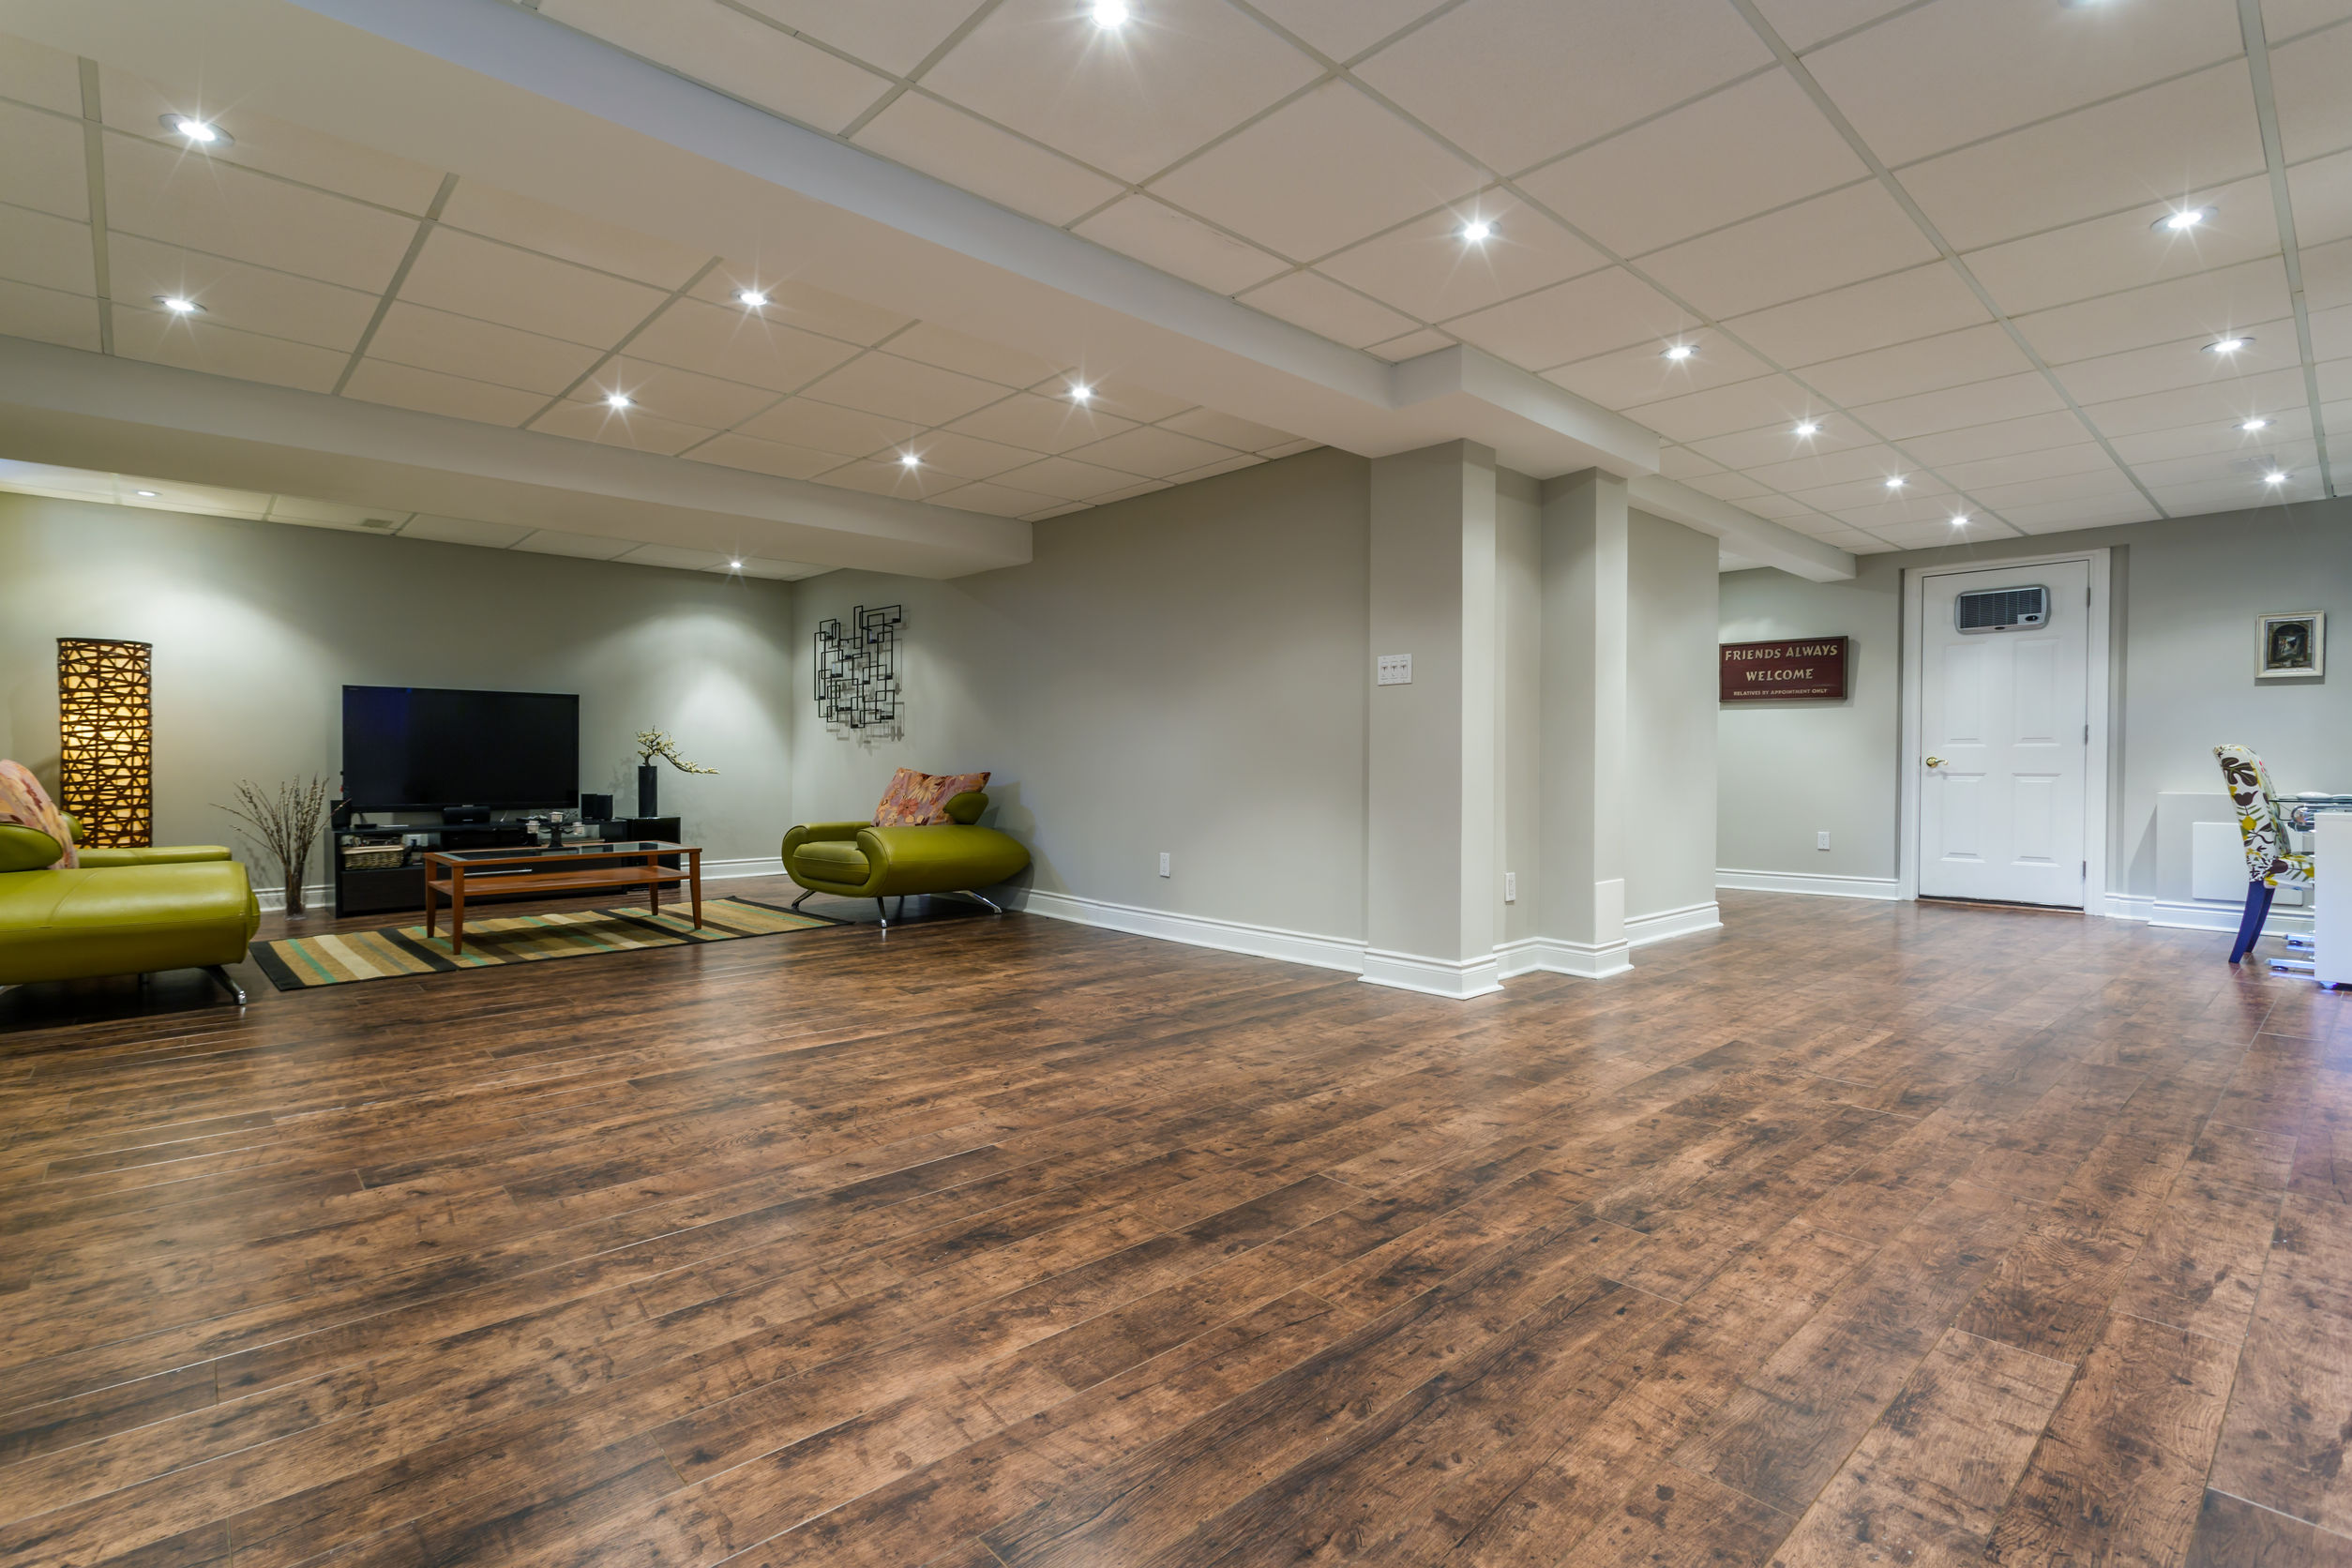 Waterproof Flooring With A Beautiful Wood Look! Yet Another Great Option  When Wanting A Warm Wood Style In Your Basement.